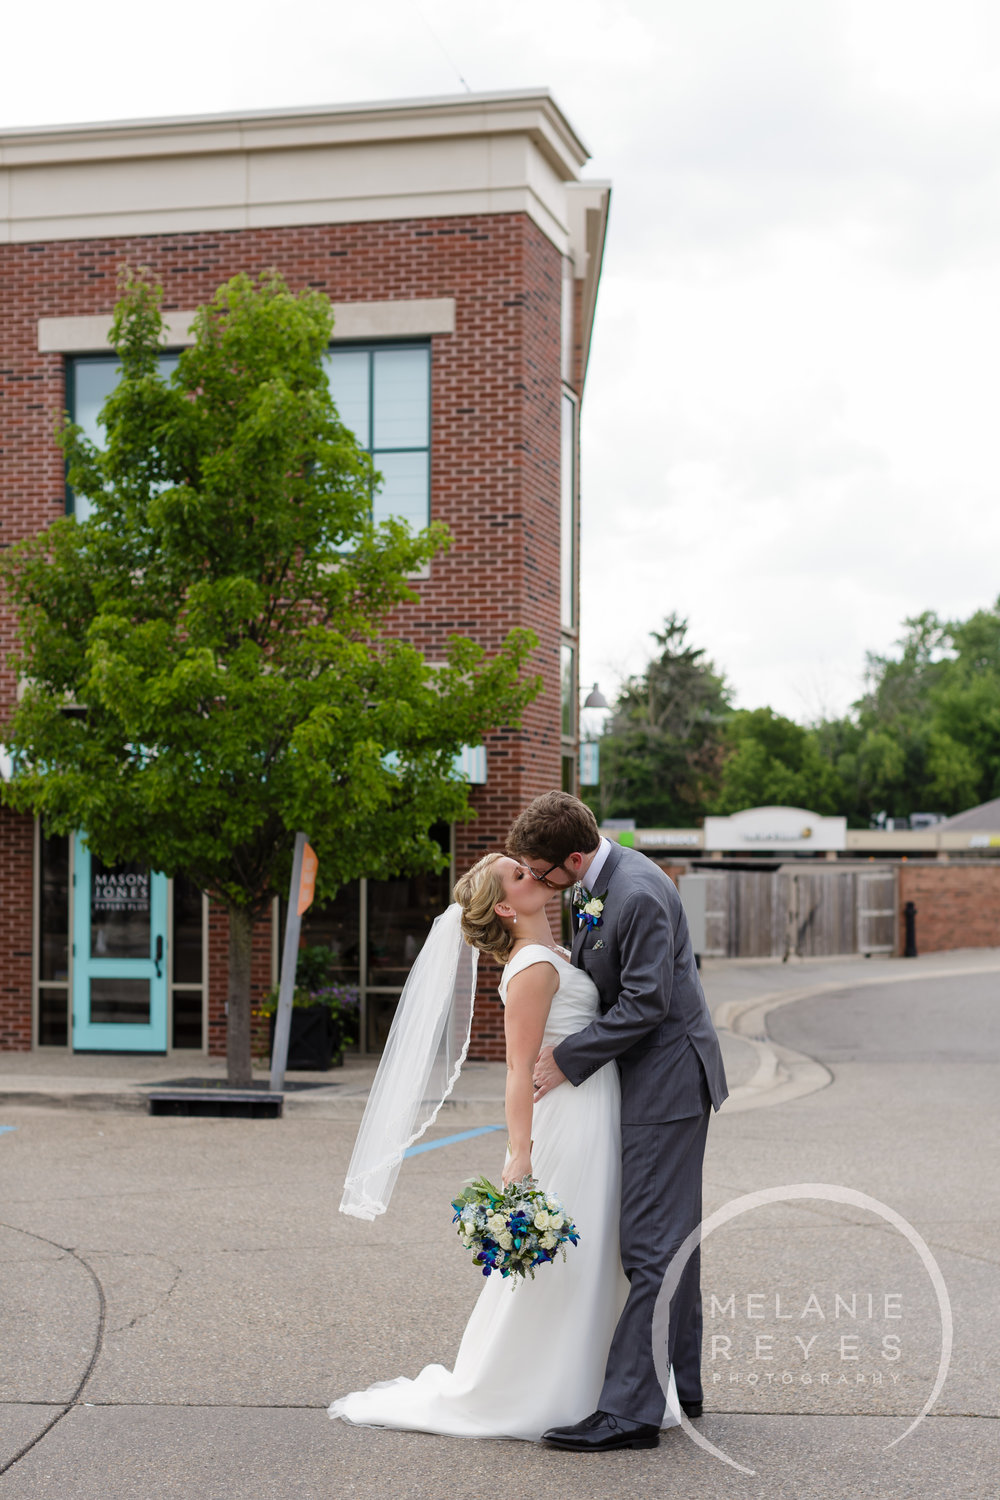 063_grandrapids_wedding_photographer_melaniereyes.JPG